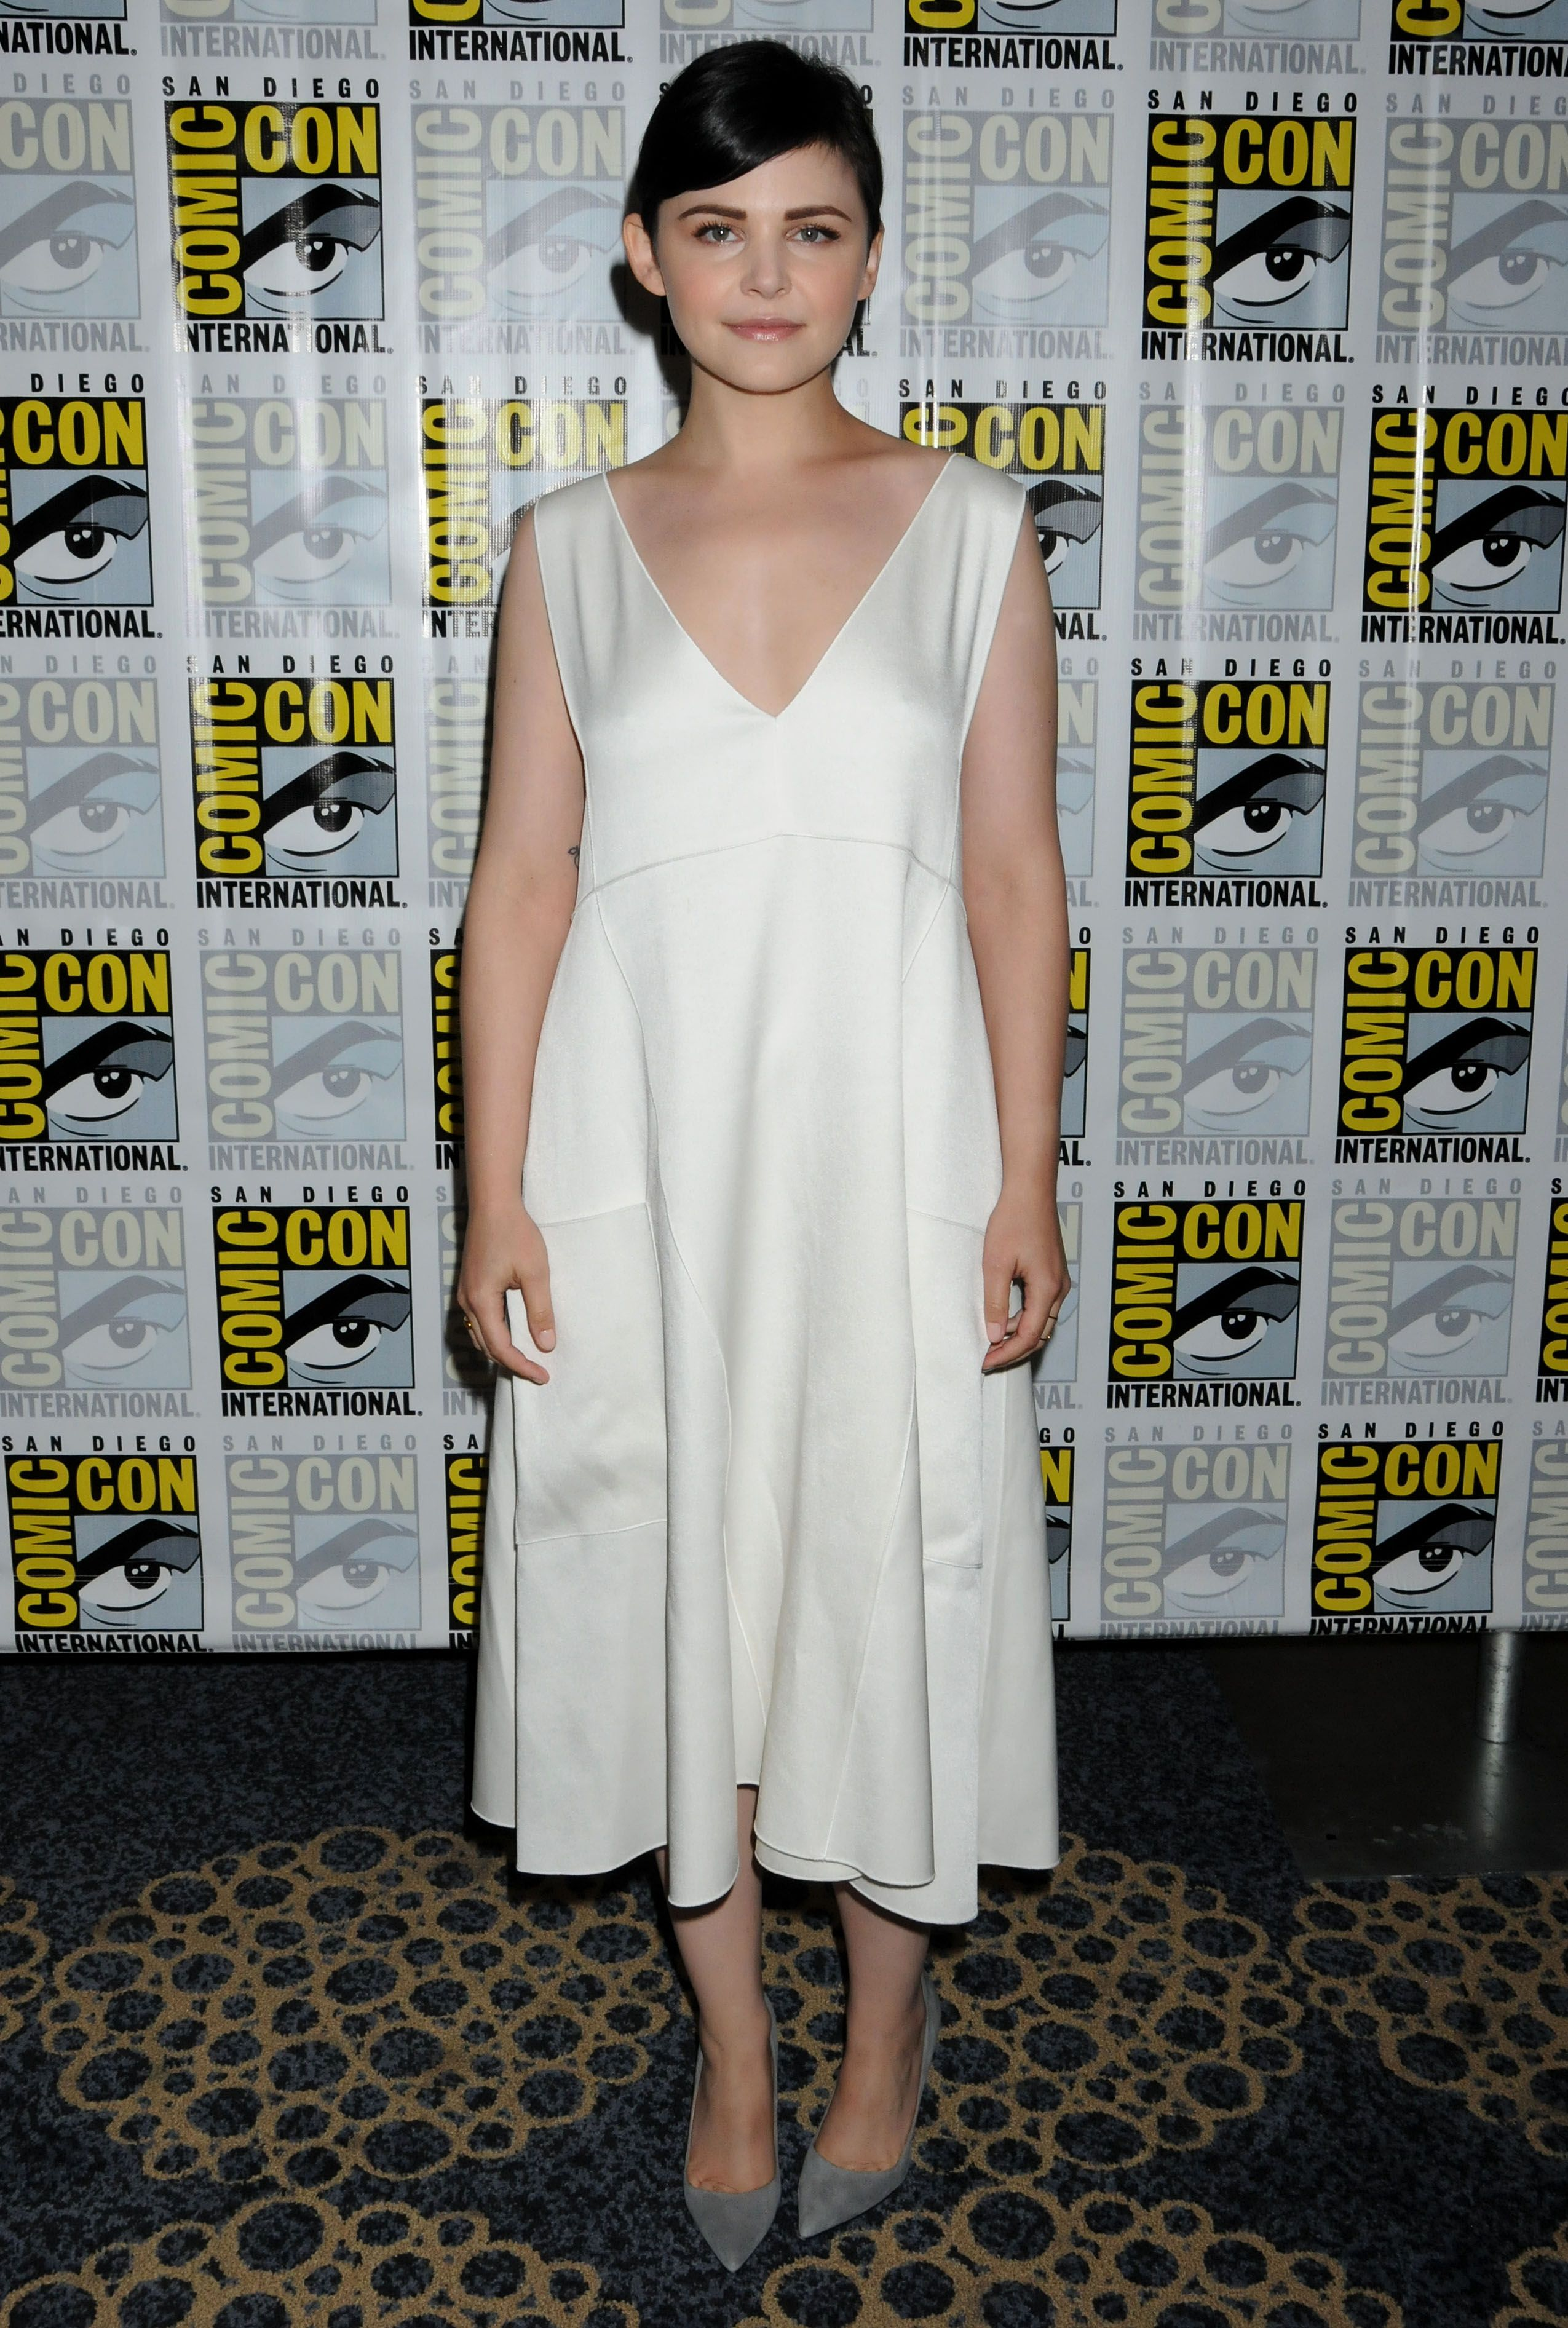 Ginnifer Goodwin @ Once Upon A Time panel at Comic-Con in San Diego - 7/20/2013